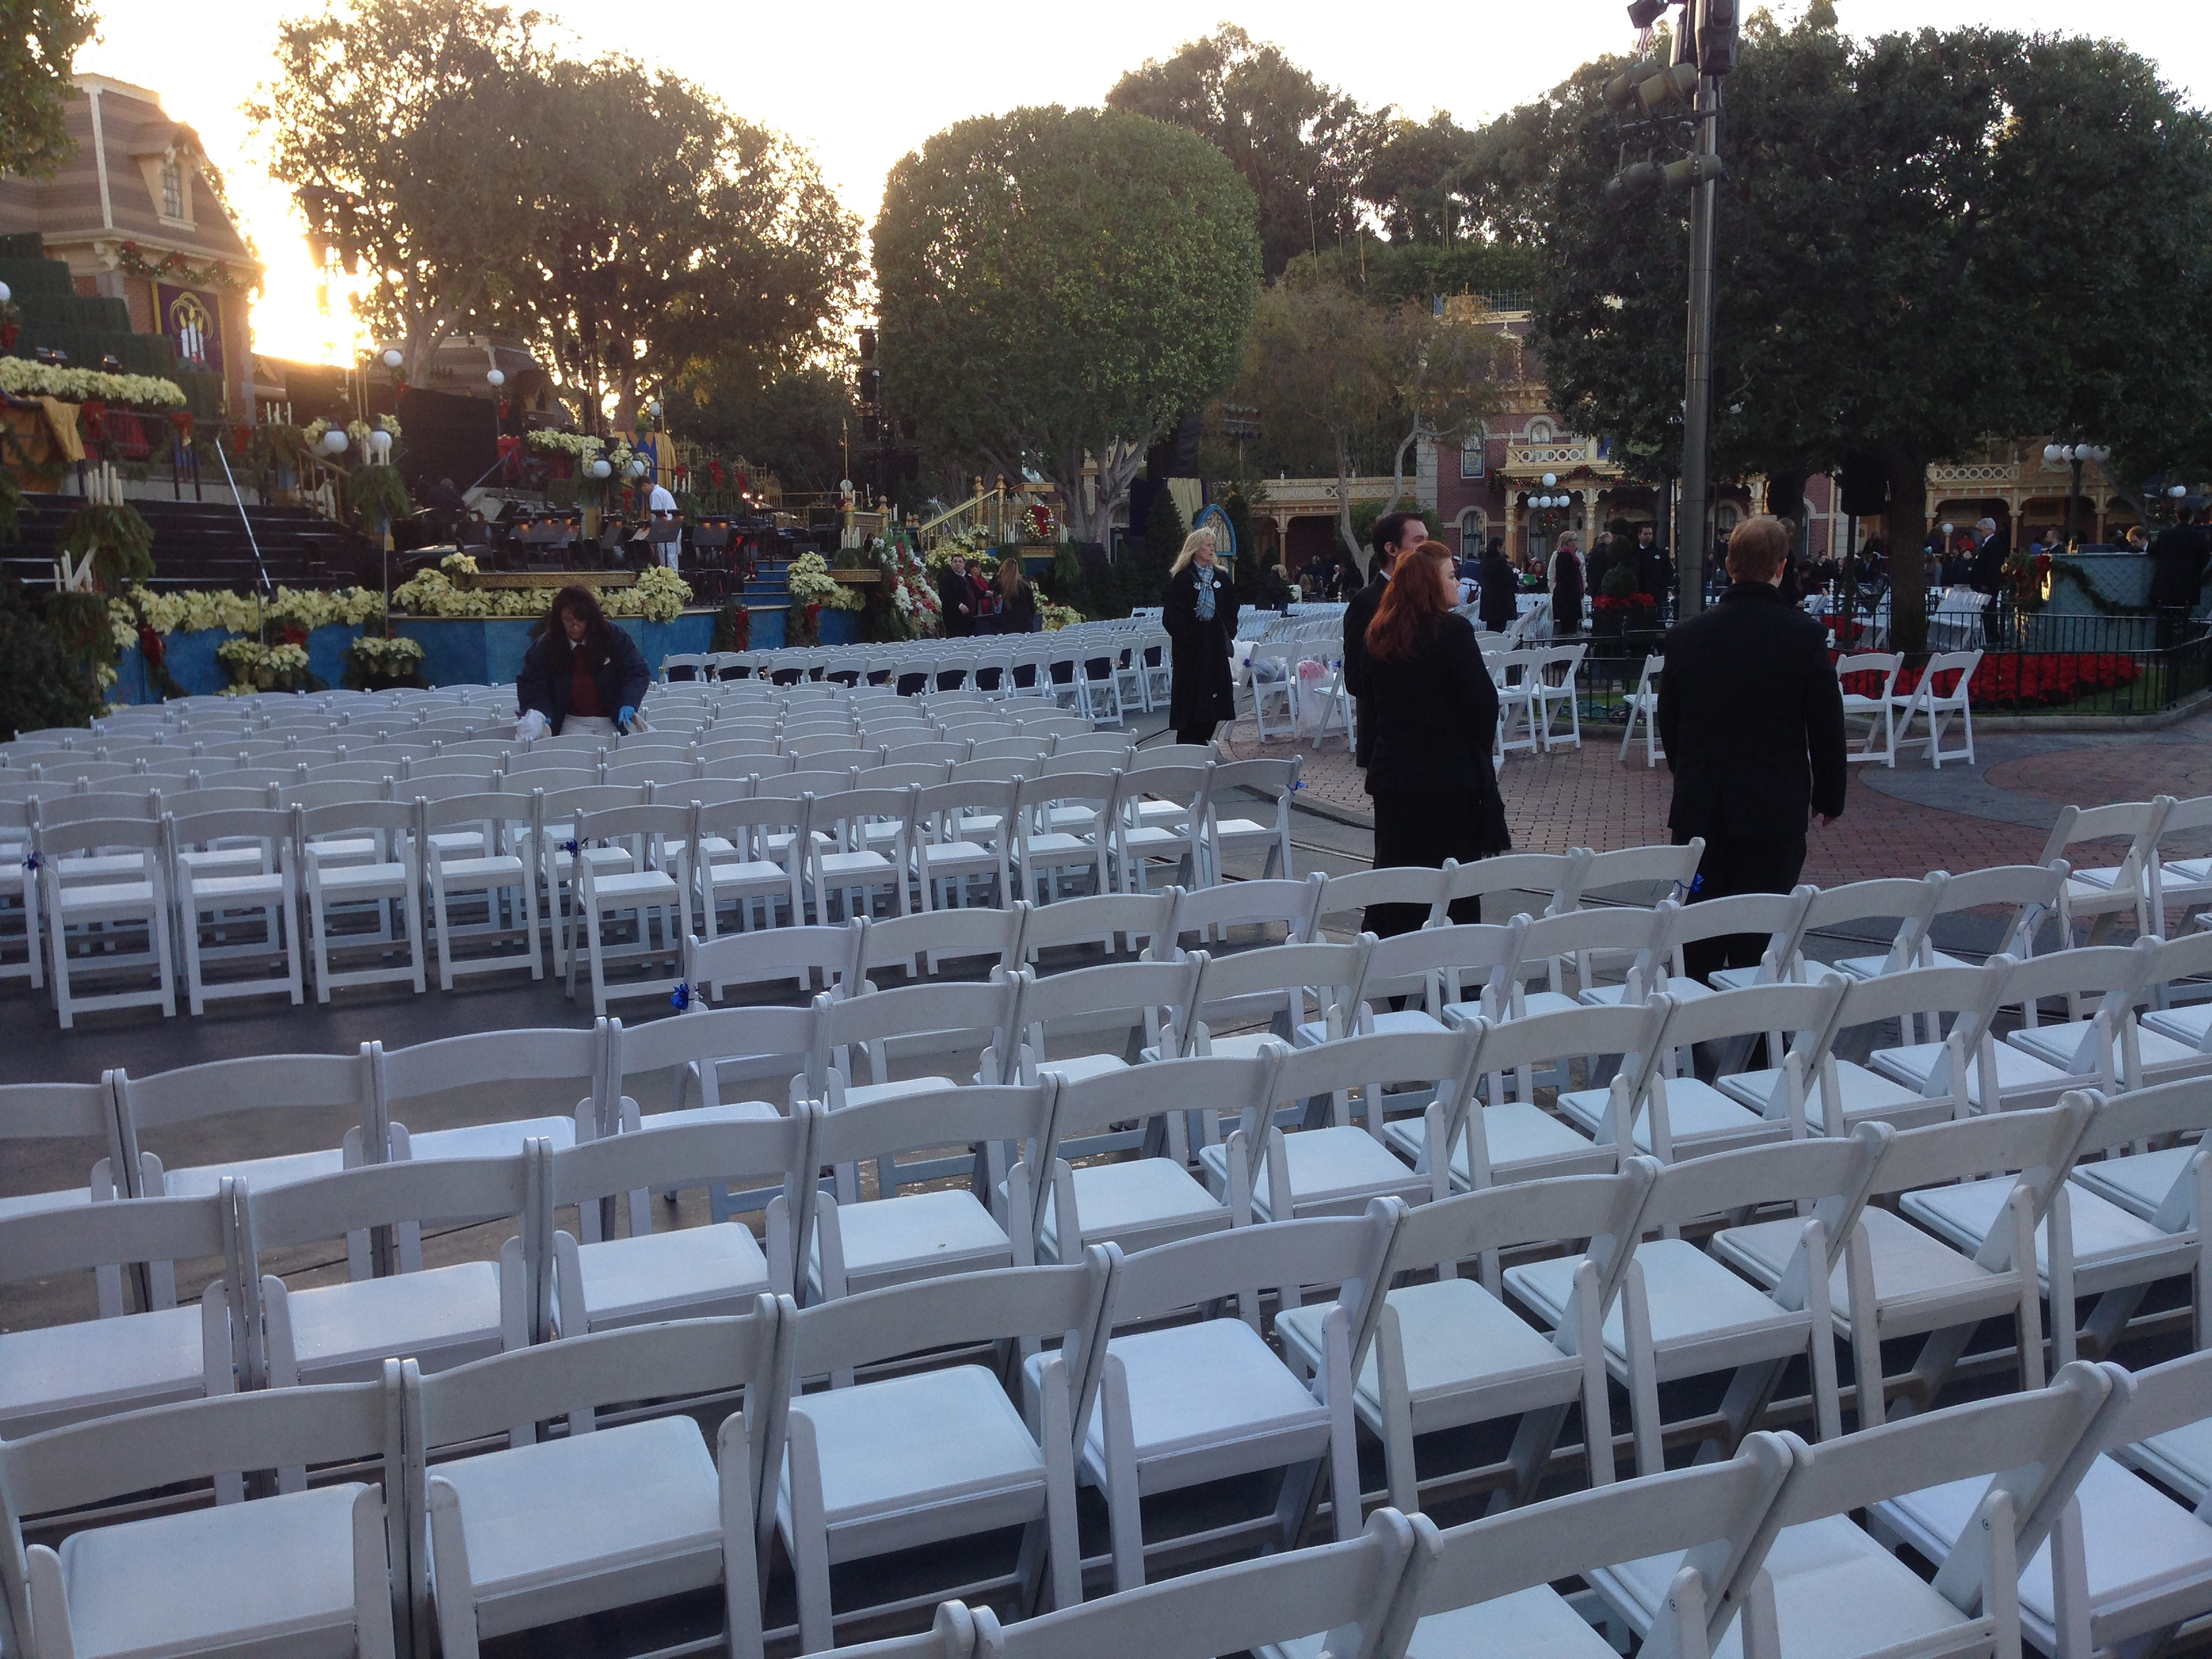 About two hours before it begins, chairs being set up